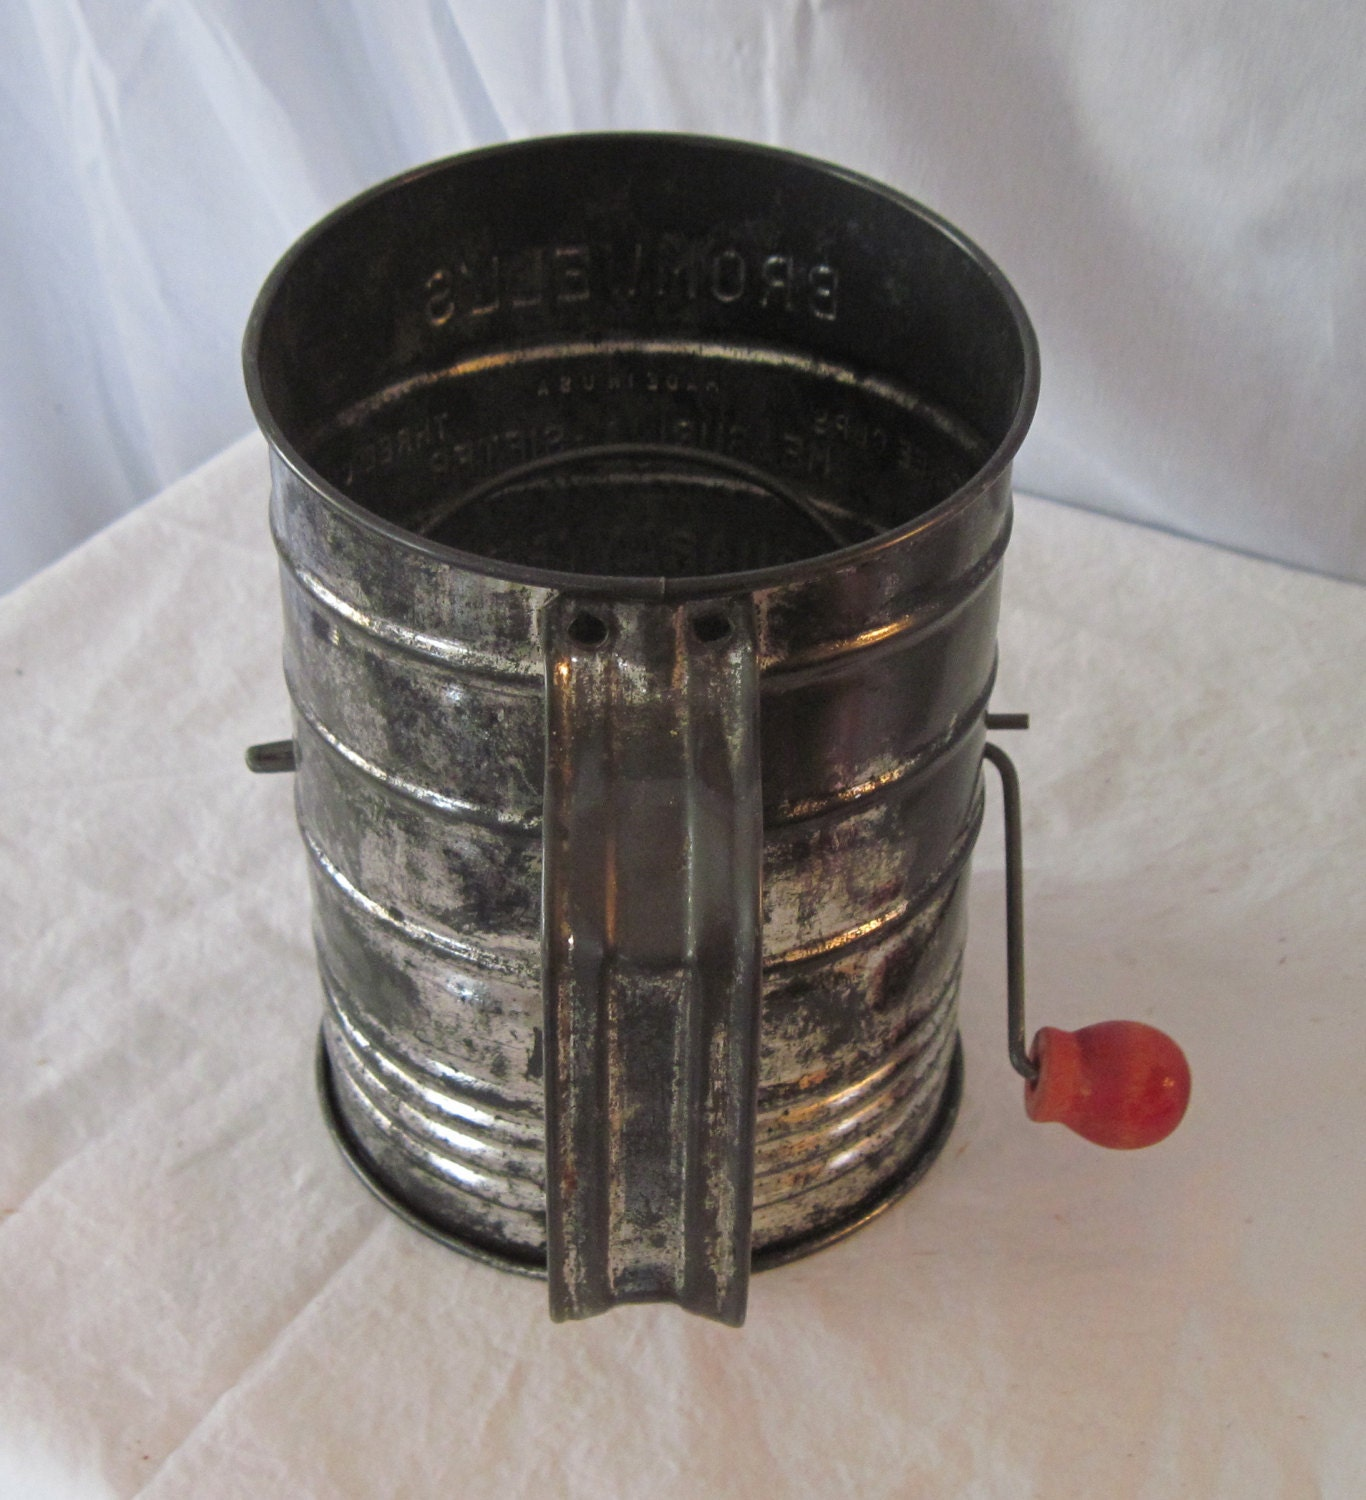 flour sifter - photo #23